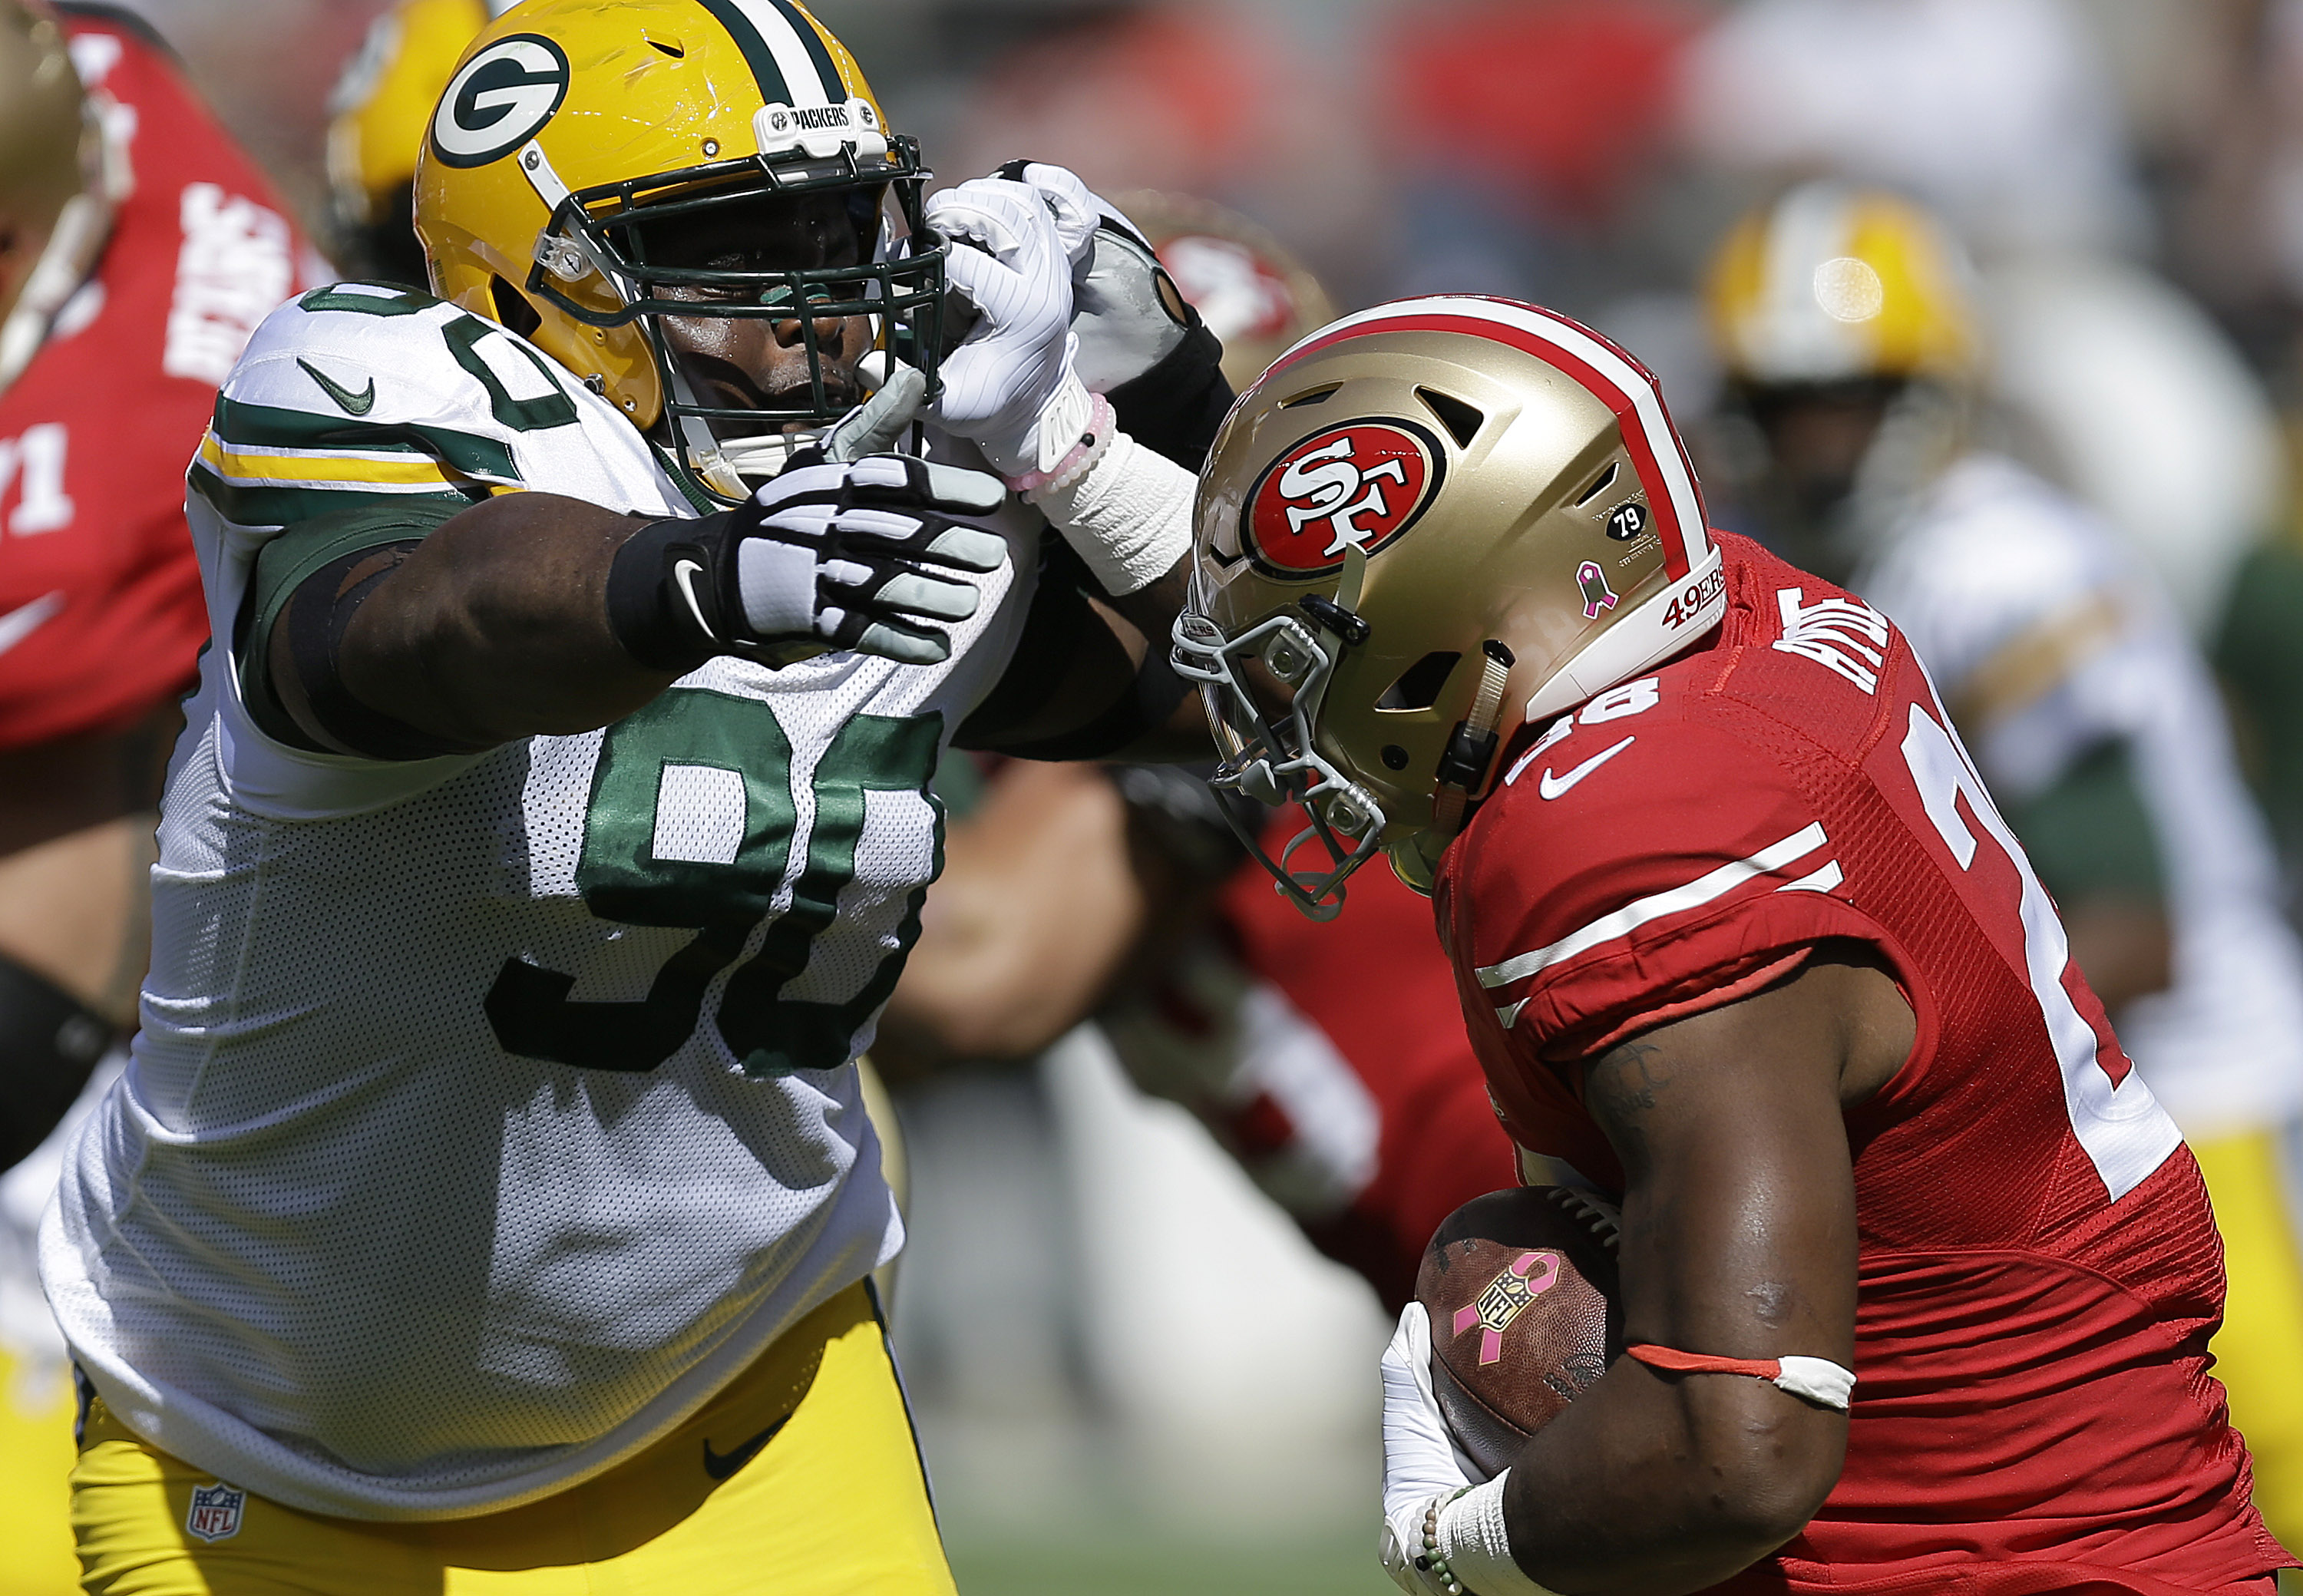 FILE - In this Oct. 4, 2015, file photo, Green Bay Packers nose tackle B.J. Raji (90) reaches for San Francisco 49ers running back Carlos Hyde during the first half of an NFL football game in Santa Clara, Calif. The Green Bay Packers have at least one dis